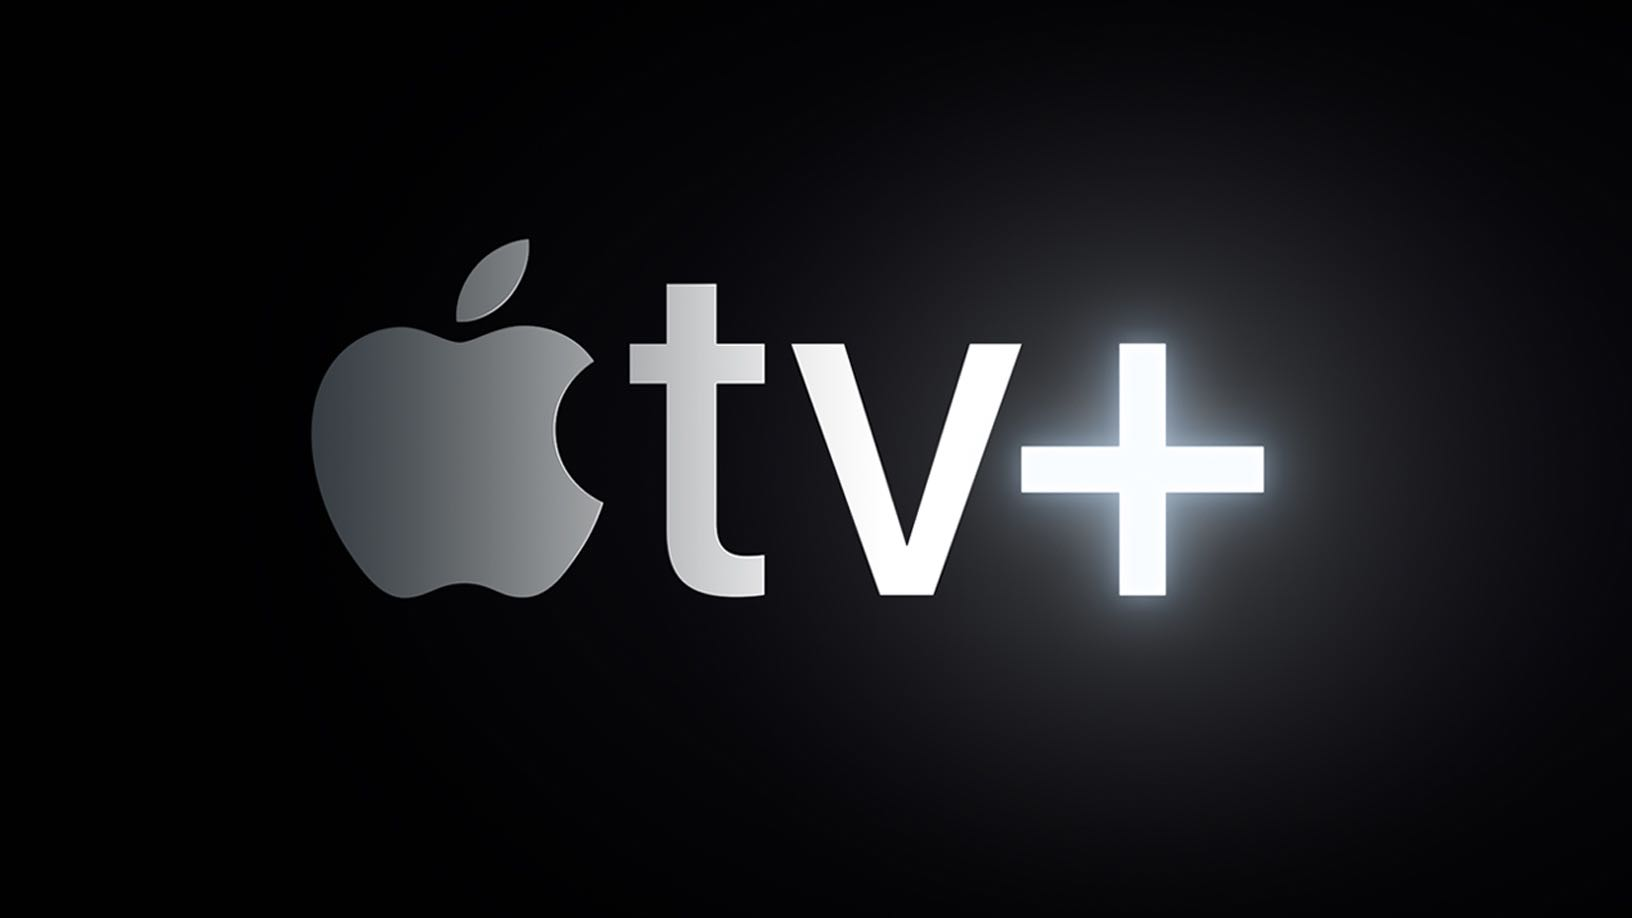 A scene from the Apple TV+ opening intro showing an Apple TV+ glowing logo set against a black background